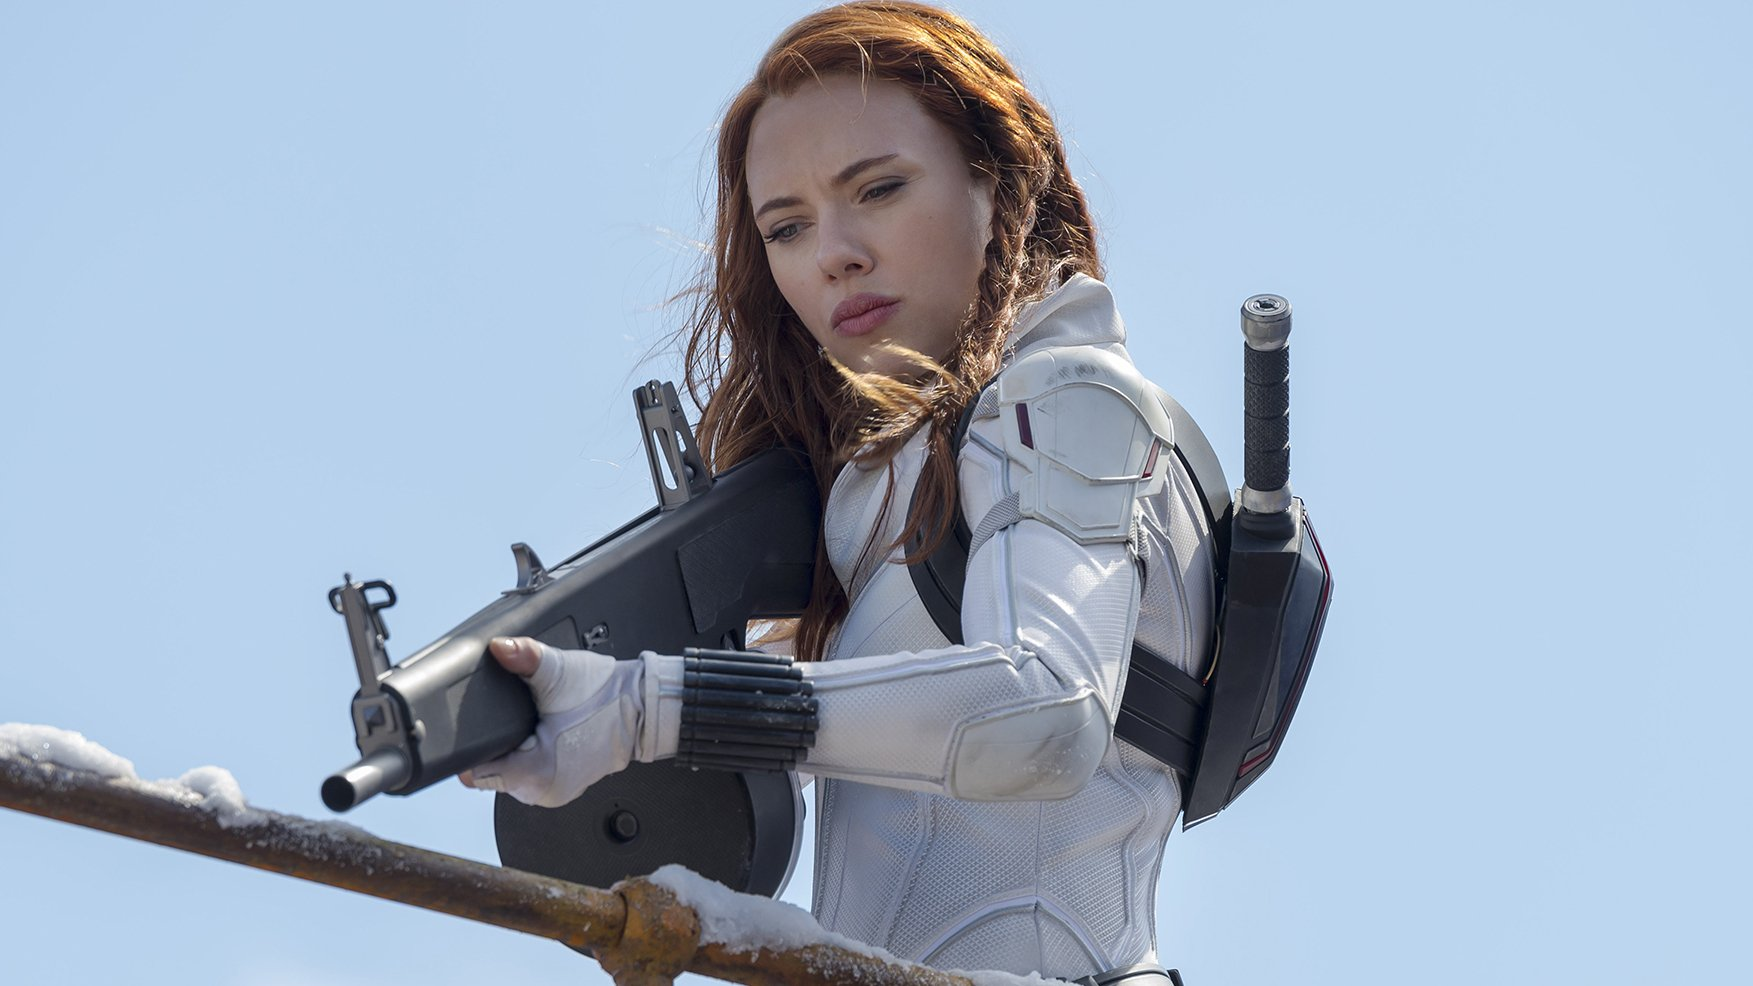 Black Widow Review: Scarlett Johansson's Solo Film Is Too Little, Too Late